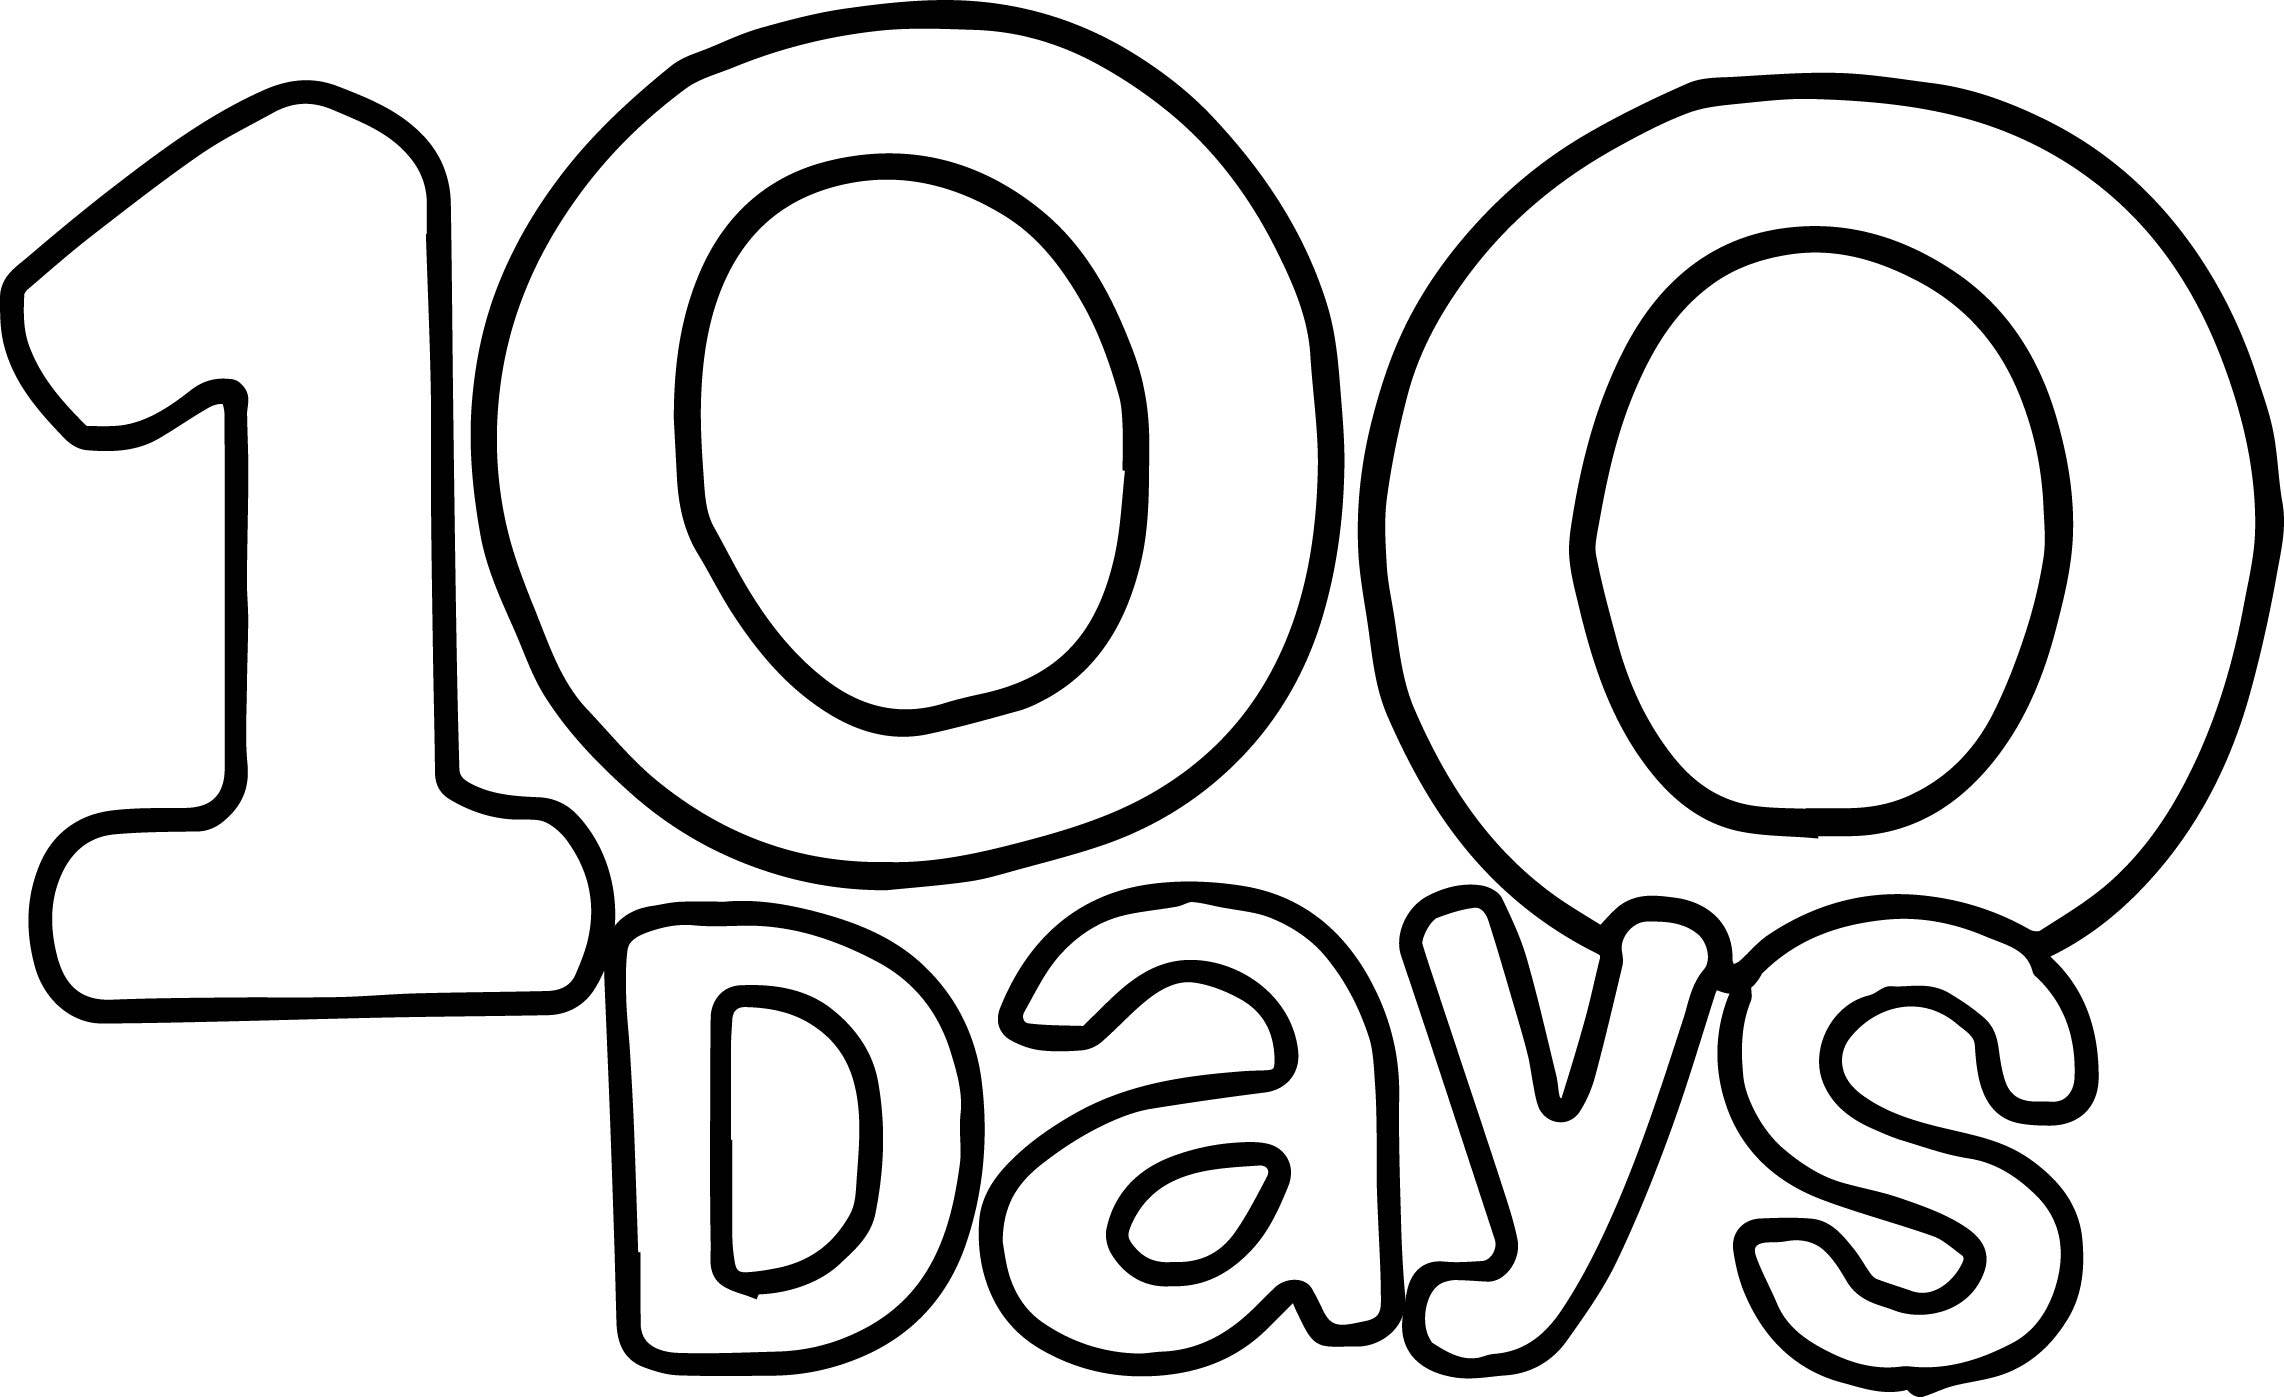 100 Days Text Coloring Page